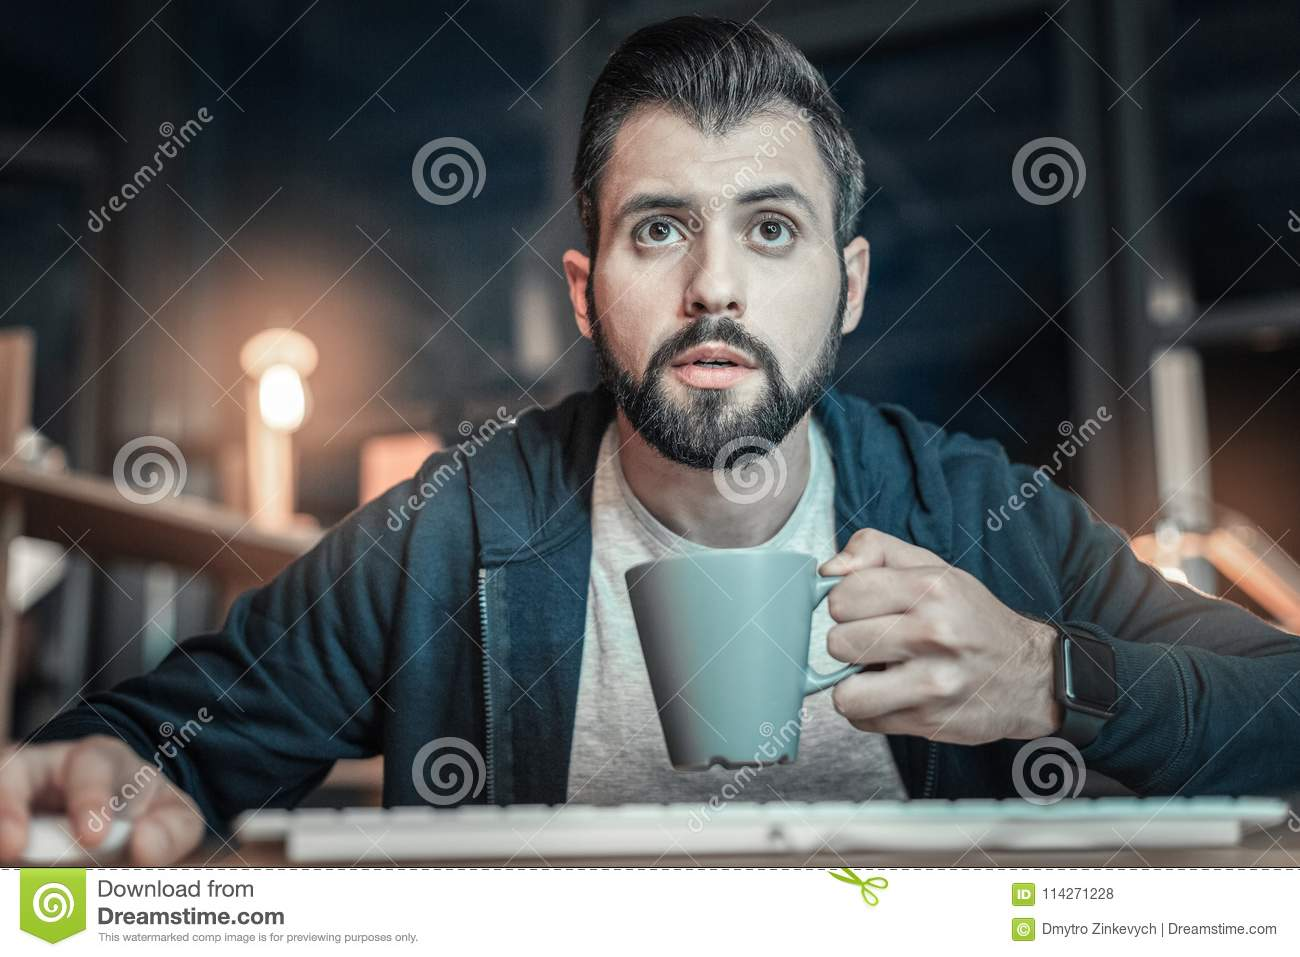 bearded-guy-learning-programming-language-process-ambitious-skillful-carrying-cup-drinking-coffee-looking-up-114271228.jpg